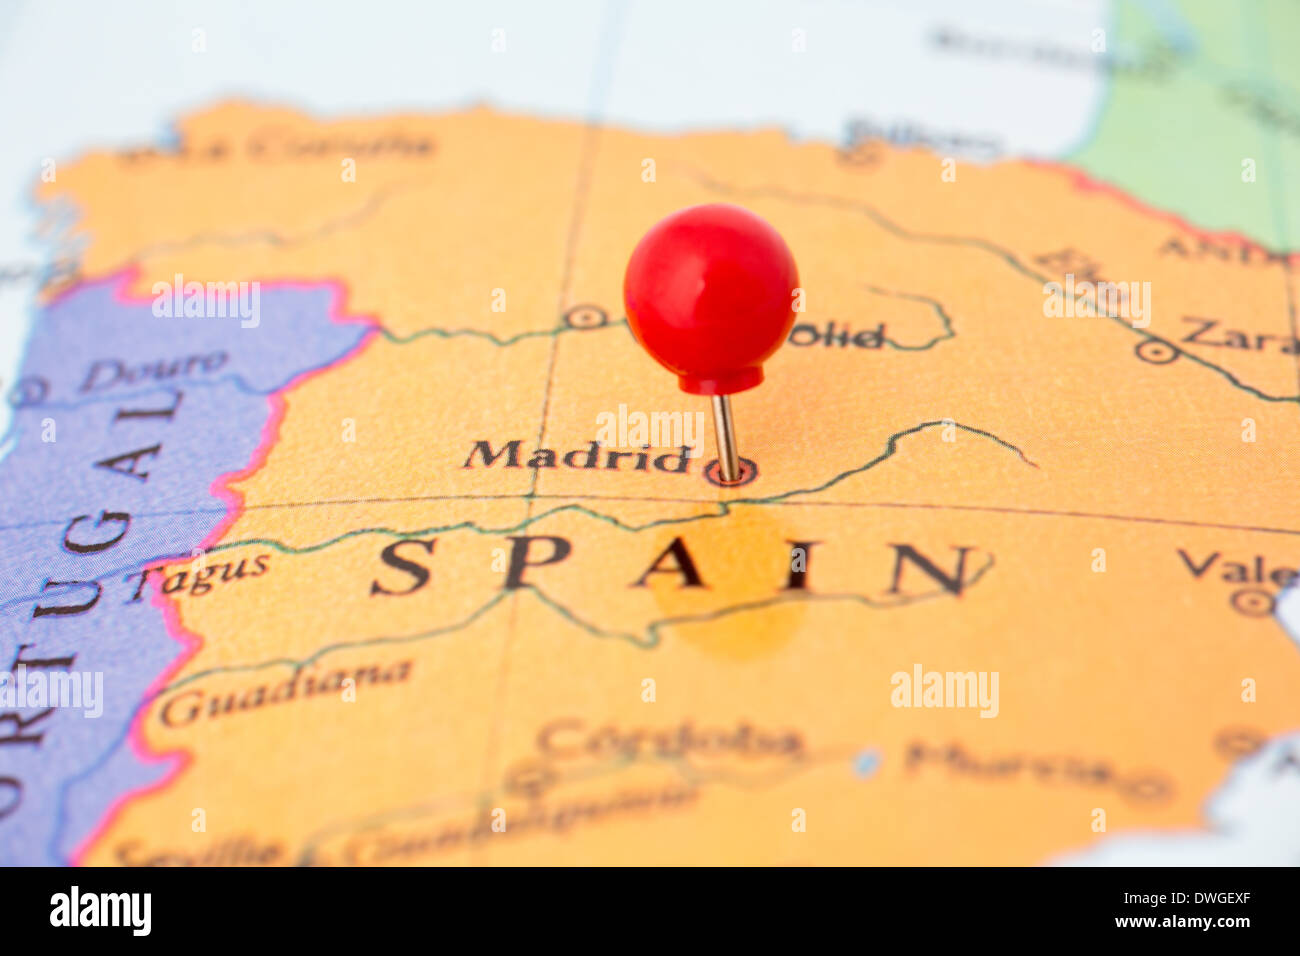 Close Up Madrid Spain Map Stockfotos & Close Up Madrid Spain ...